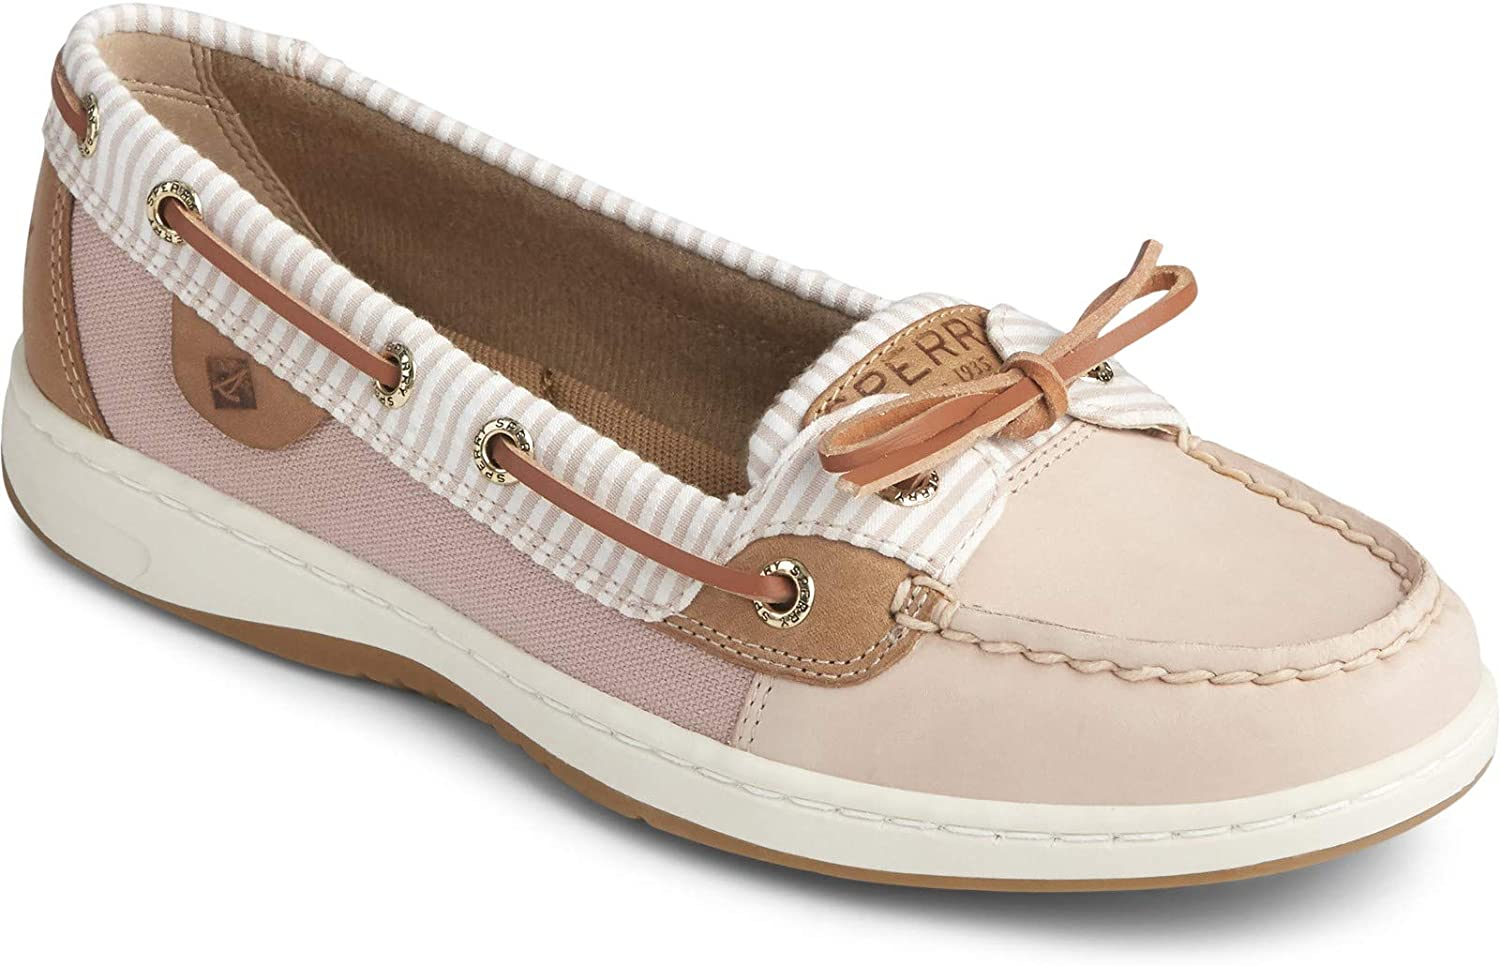 Sperry Women's Angelfish Boat Shoe